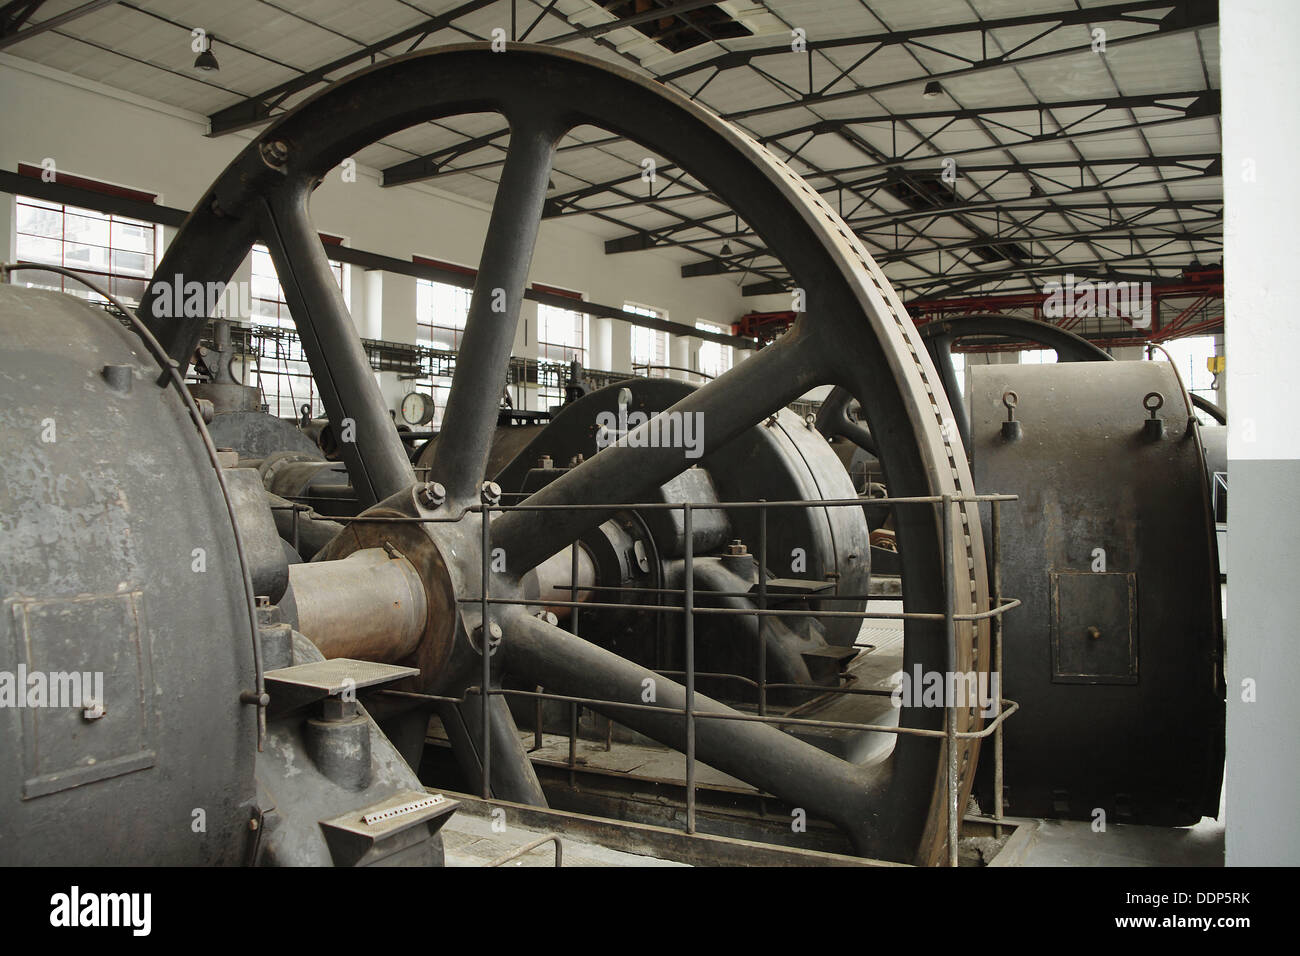 Compressors room in former Hansa coking plant (went into operation in 1928), now a technical museum, Dortmund, Germany Stock Photo